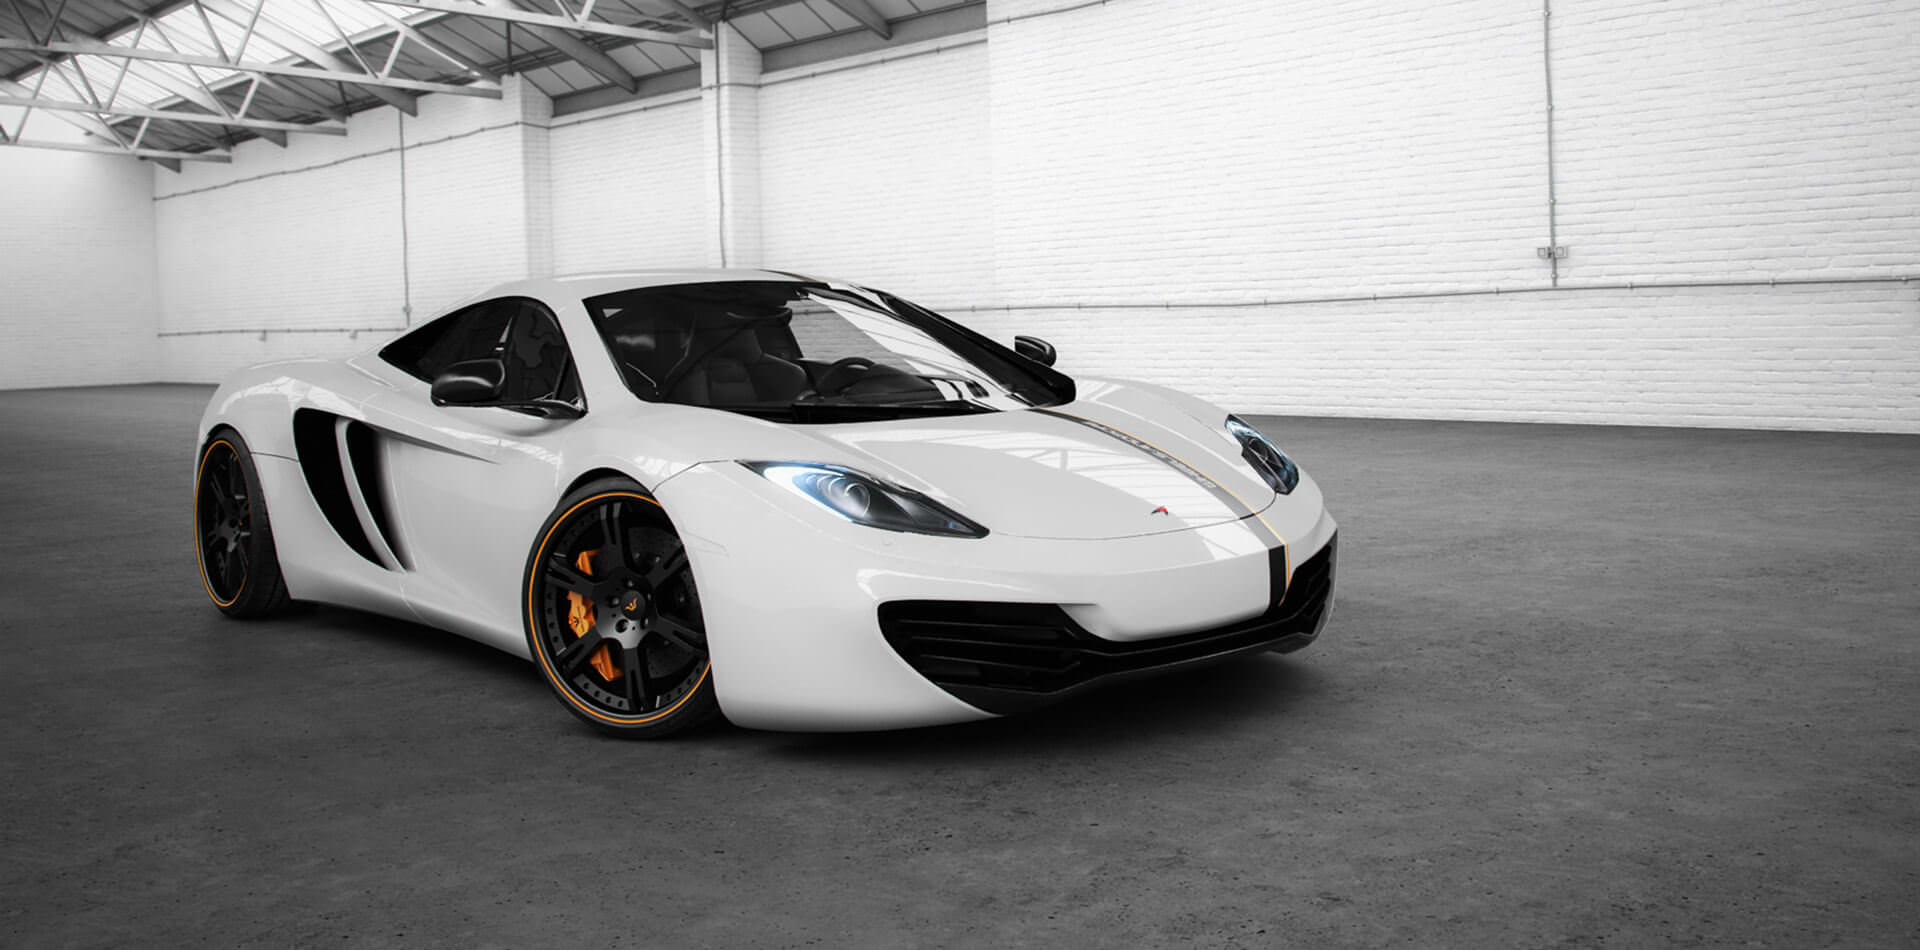 wheelsandmore_Tuning_McLaren_MP4-12C